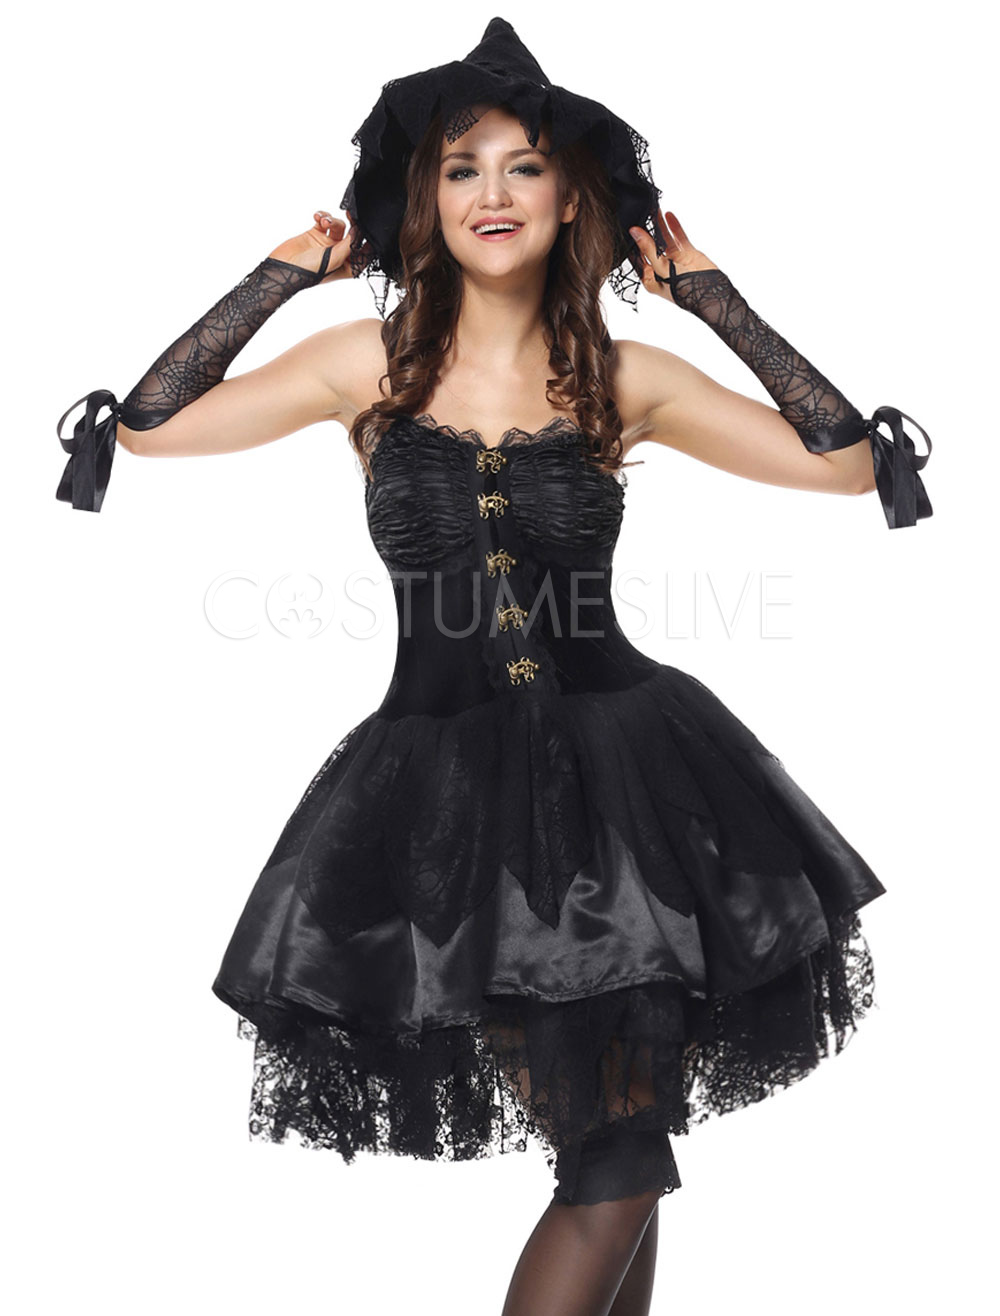 Halloween Witch Costume Black Lace Patchwork Short Dresses Outfit